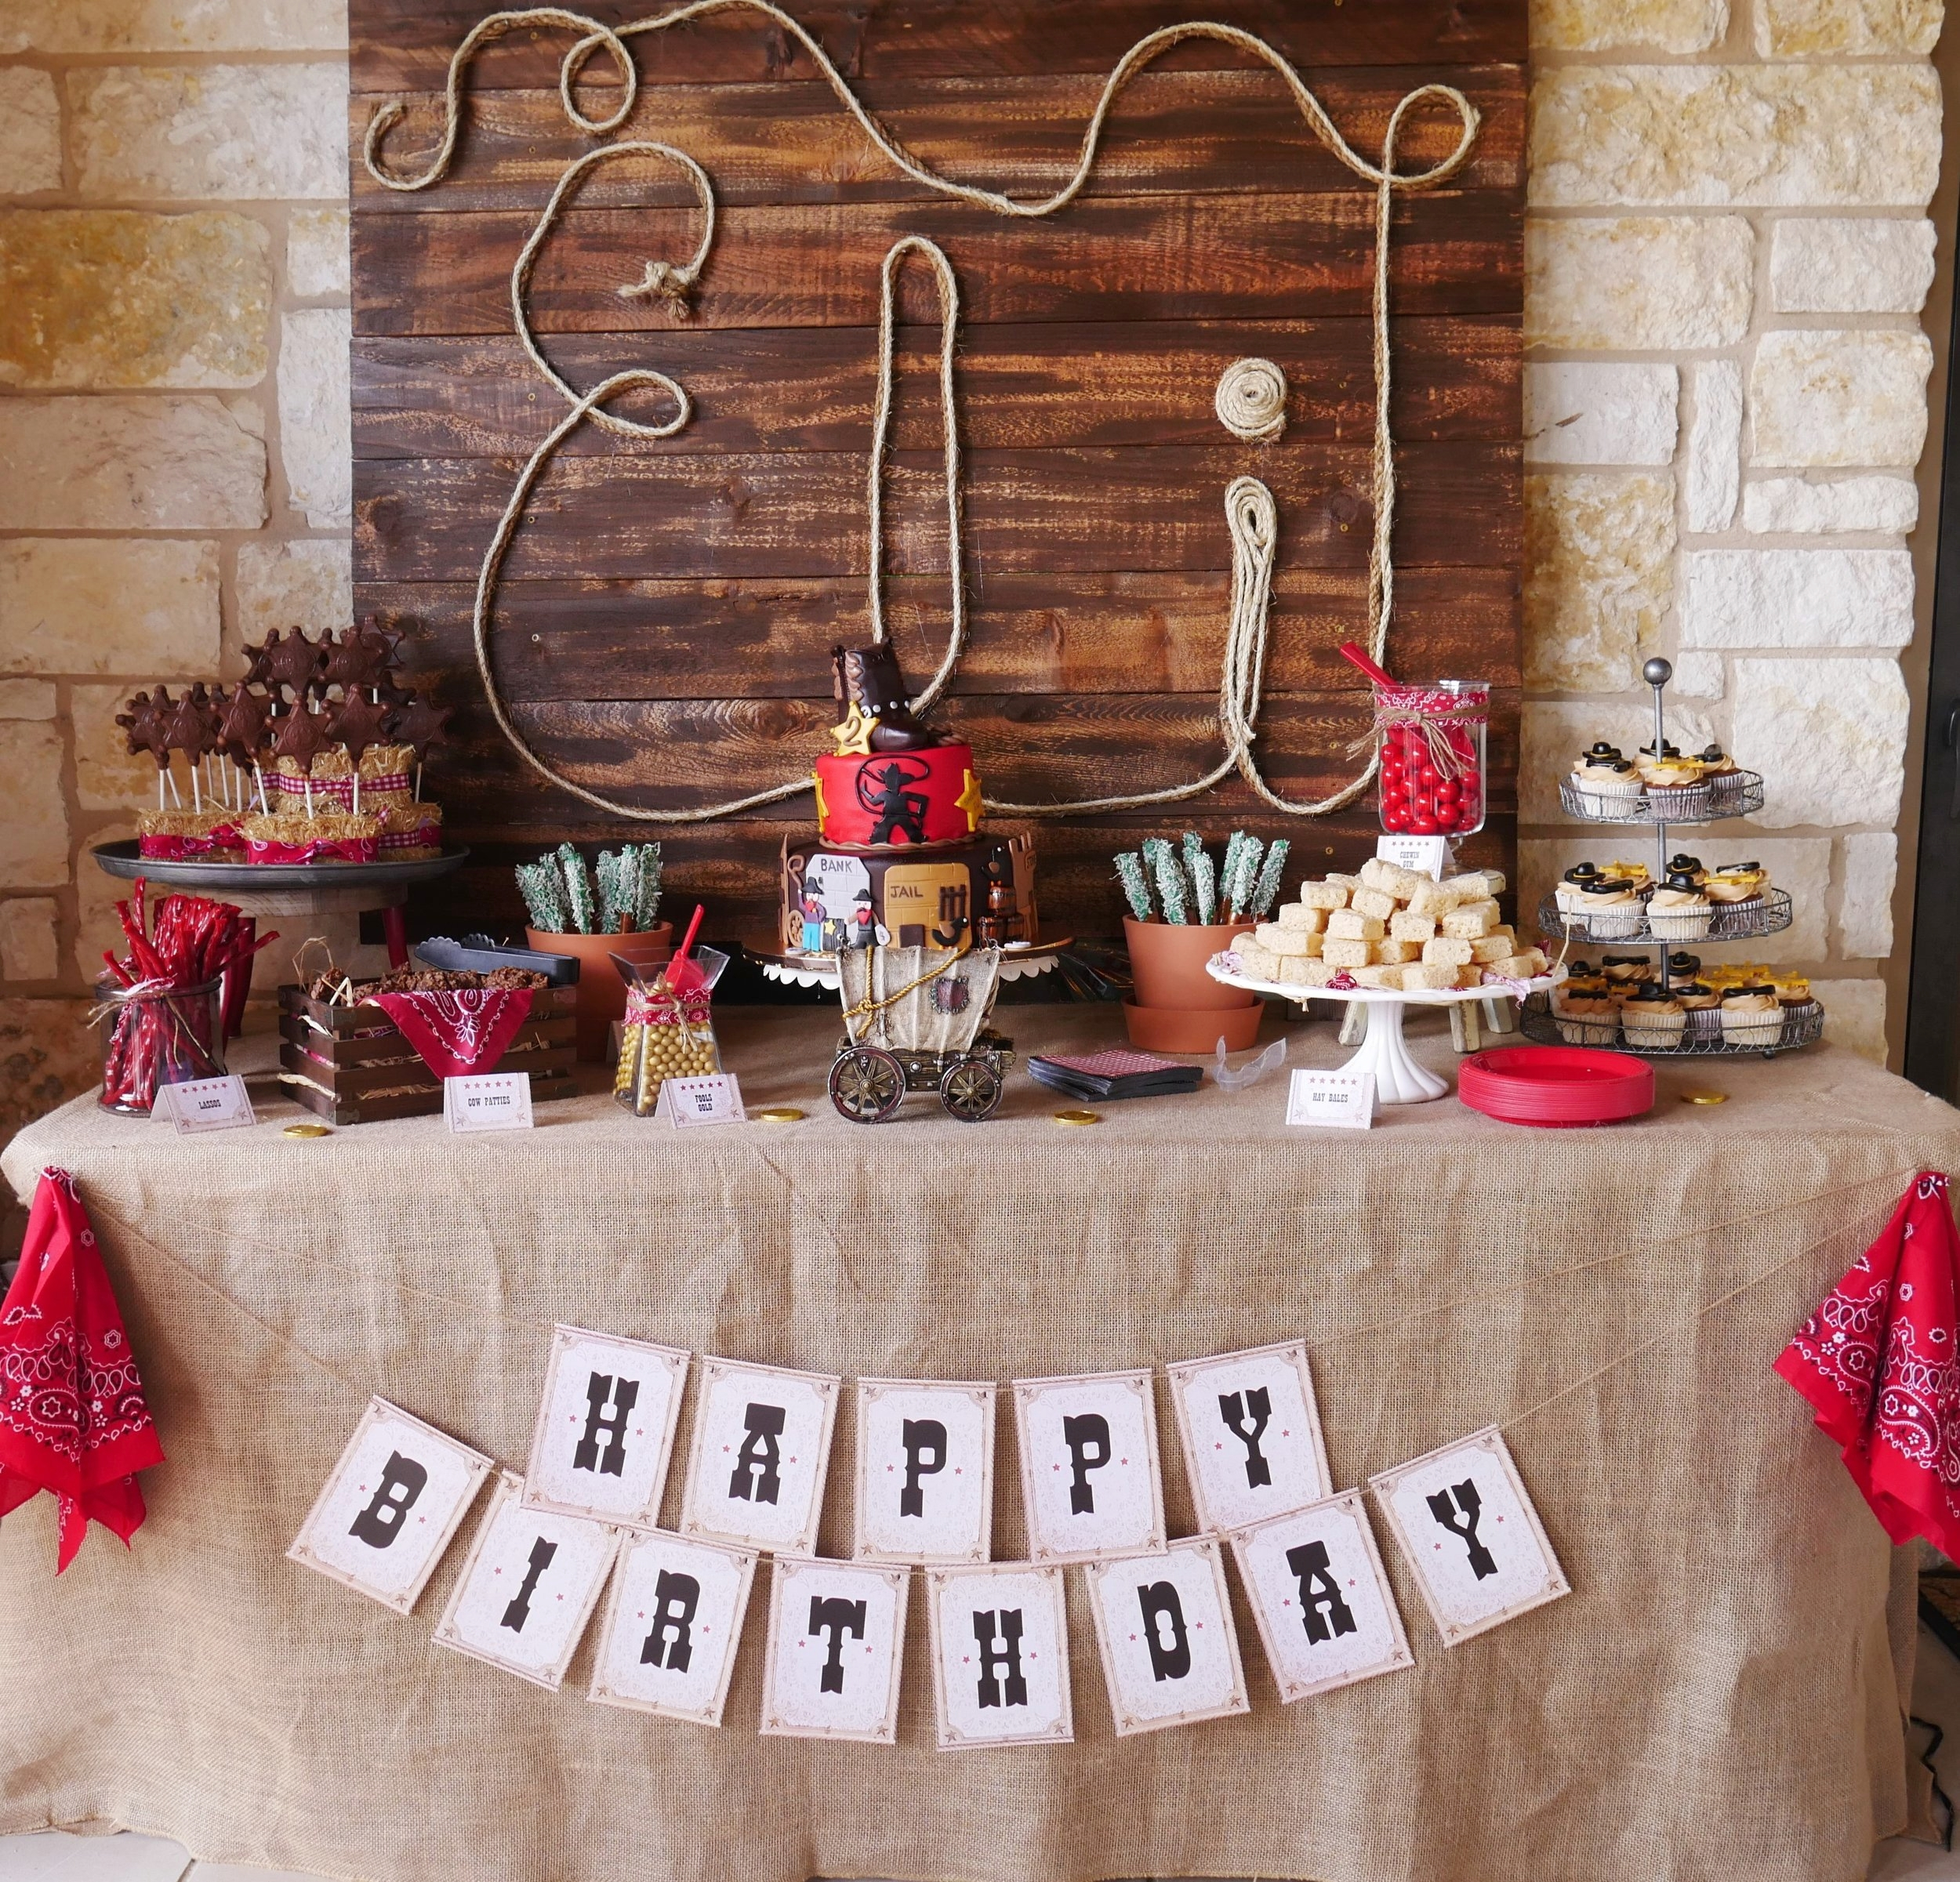 The best Wild Wild West Birthday Party Ideas complete with a Wild West Printable Party Set. This birthday party is perfect for your little cowboy that loves to pretend they are out on the ranch. Click to find Western Party Ideas for the dessert table and cowboy party decorations / Styled by Carolina from MINT Event Design / www.minteventdesign.com #wildwest #cowboy #birthdayparty #partyideas #desserttable #boybirthday